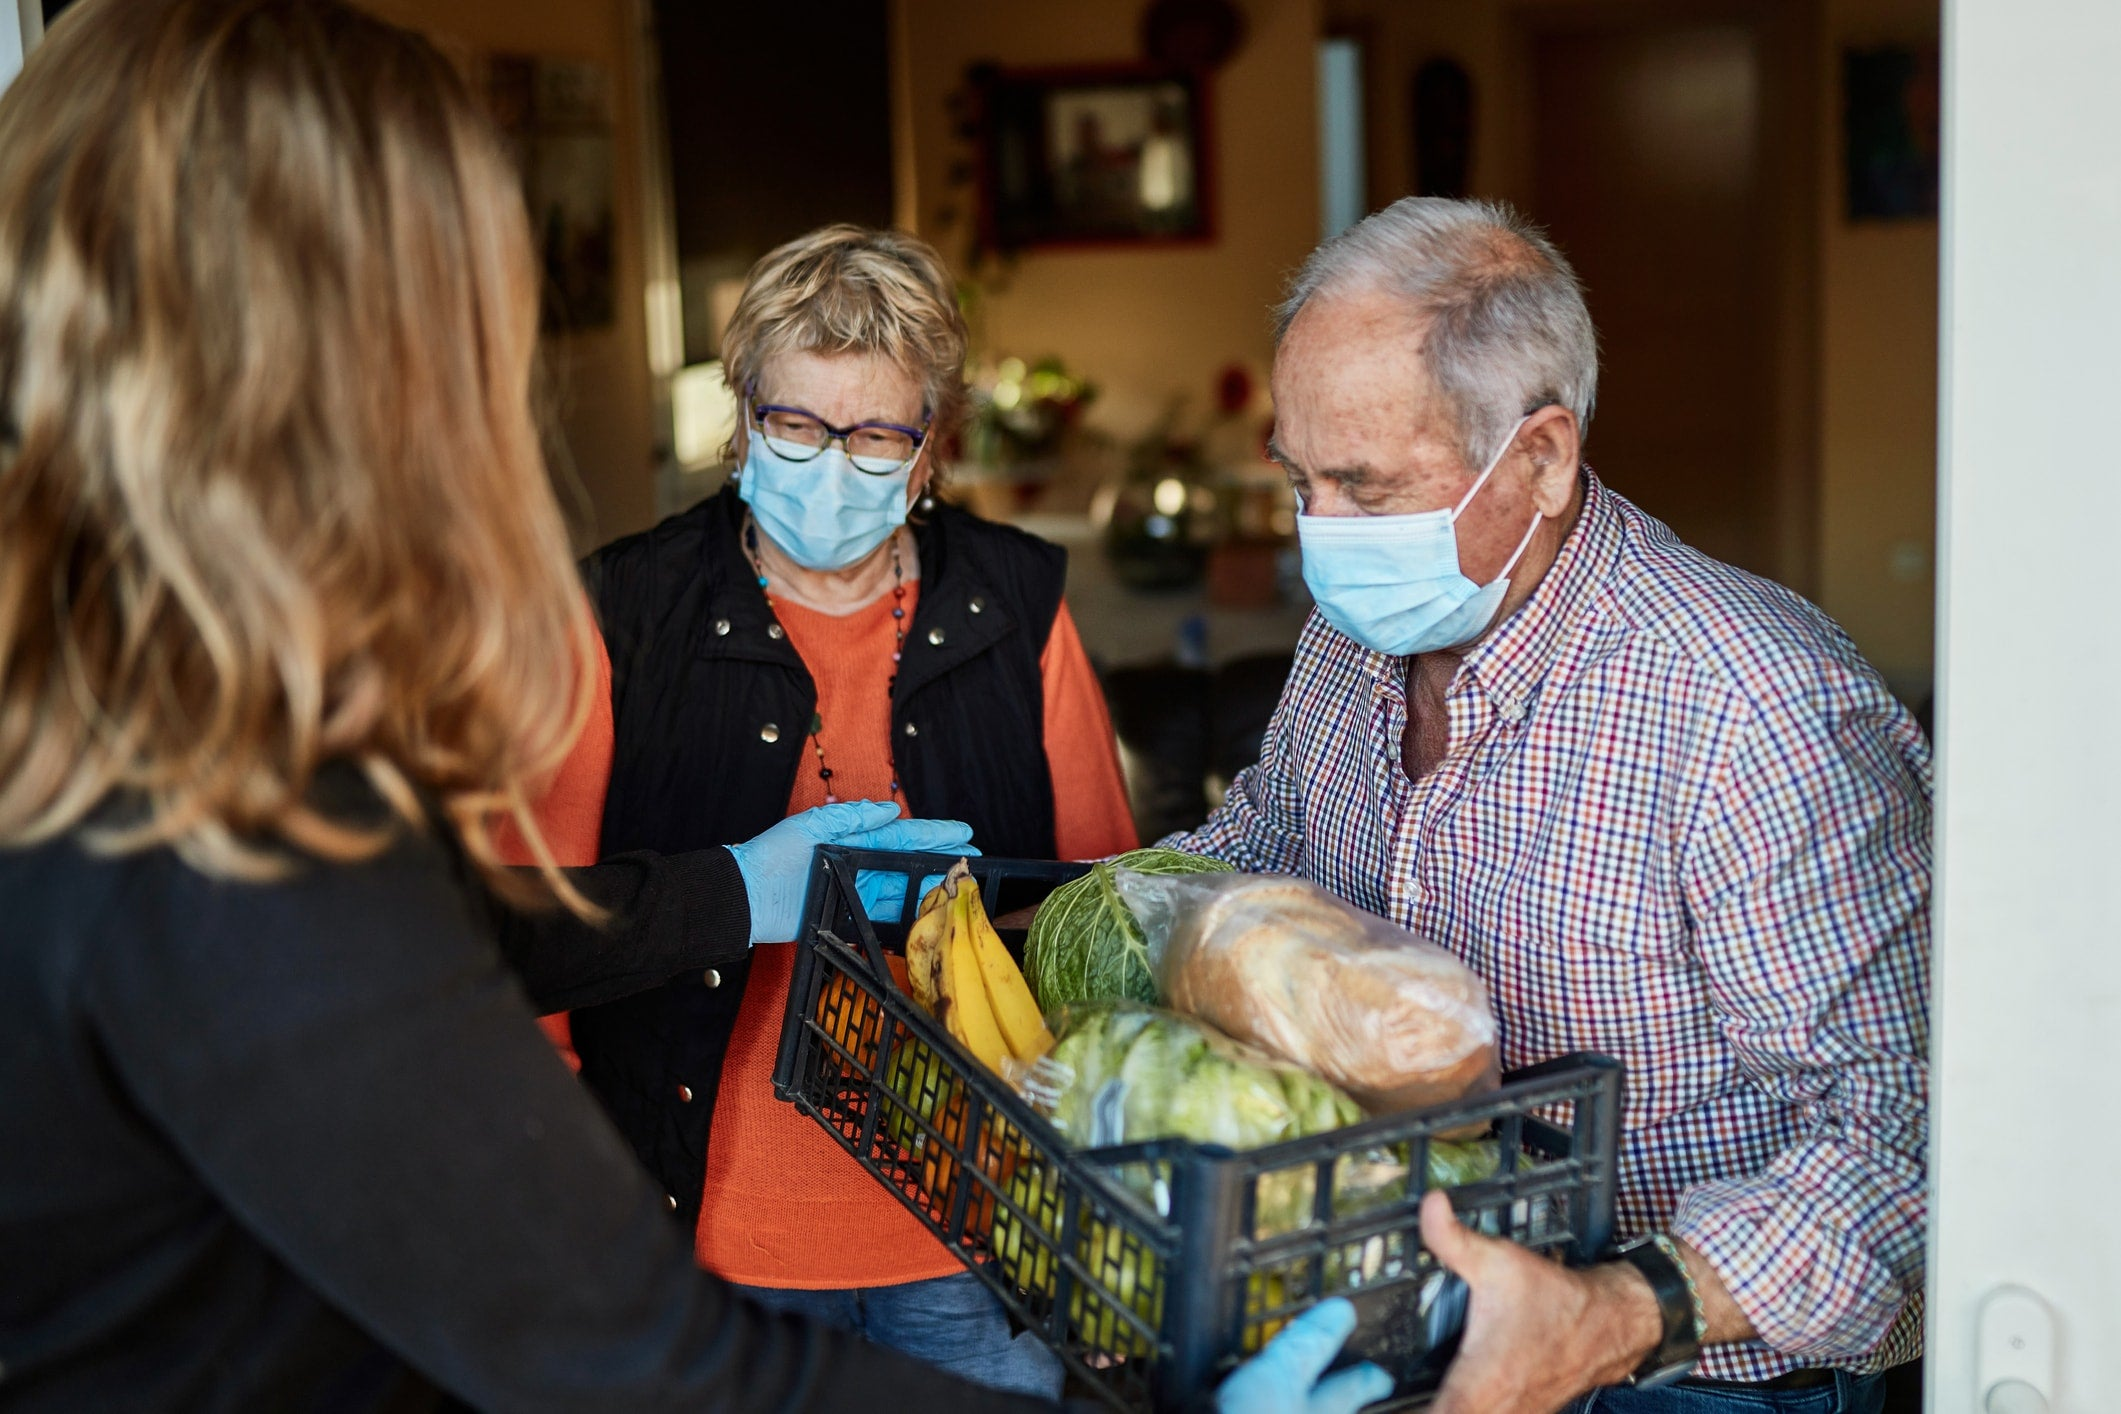 How Seniors Can Shop Safely During the COVID-19 Pandemic